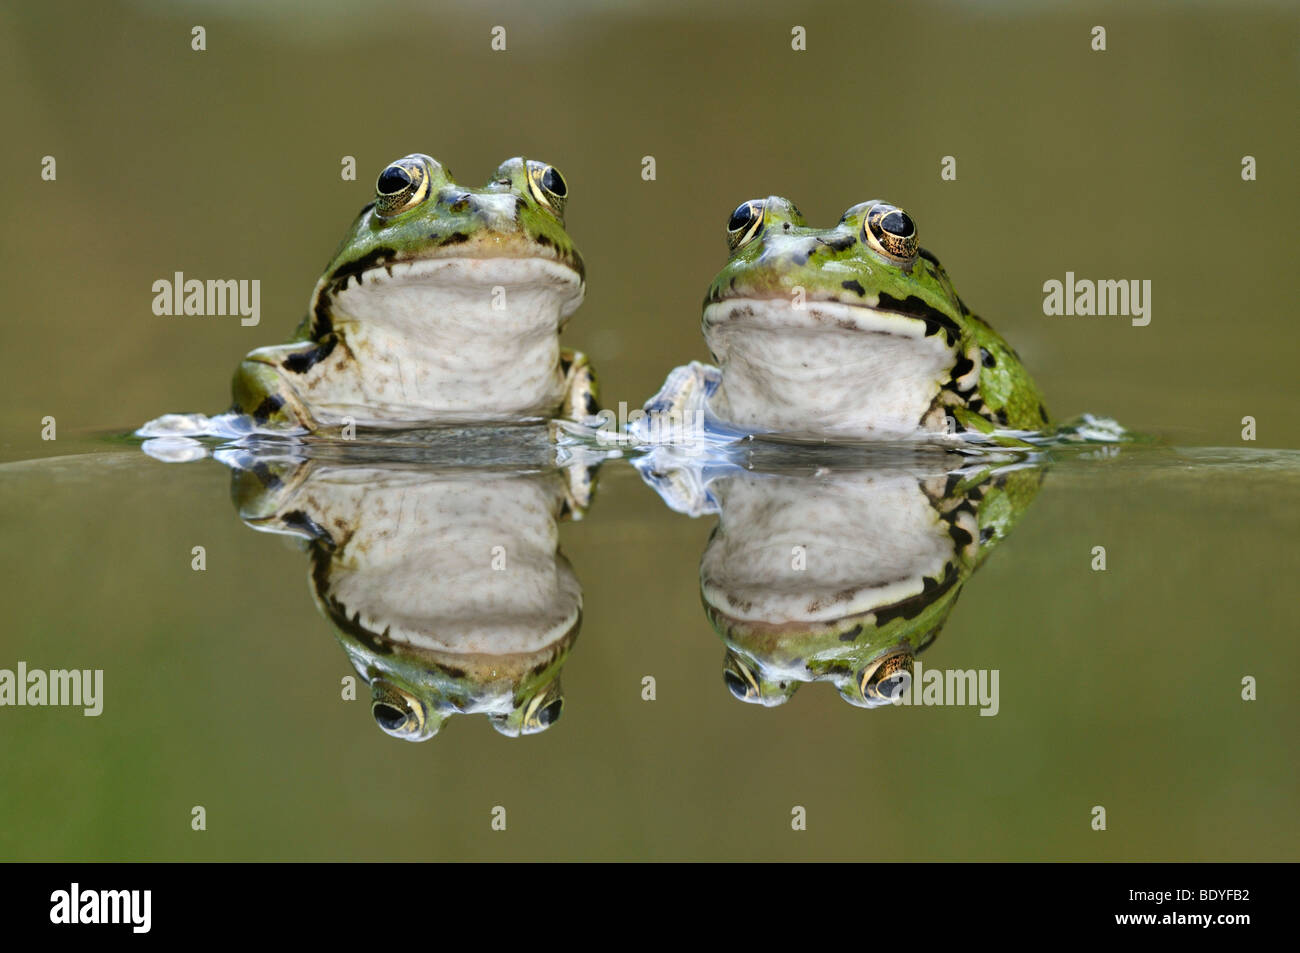 Water frogs (Rana esculenta, Pelophylax kl. esculentus) with reflection - Stock Image